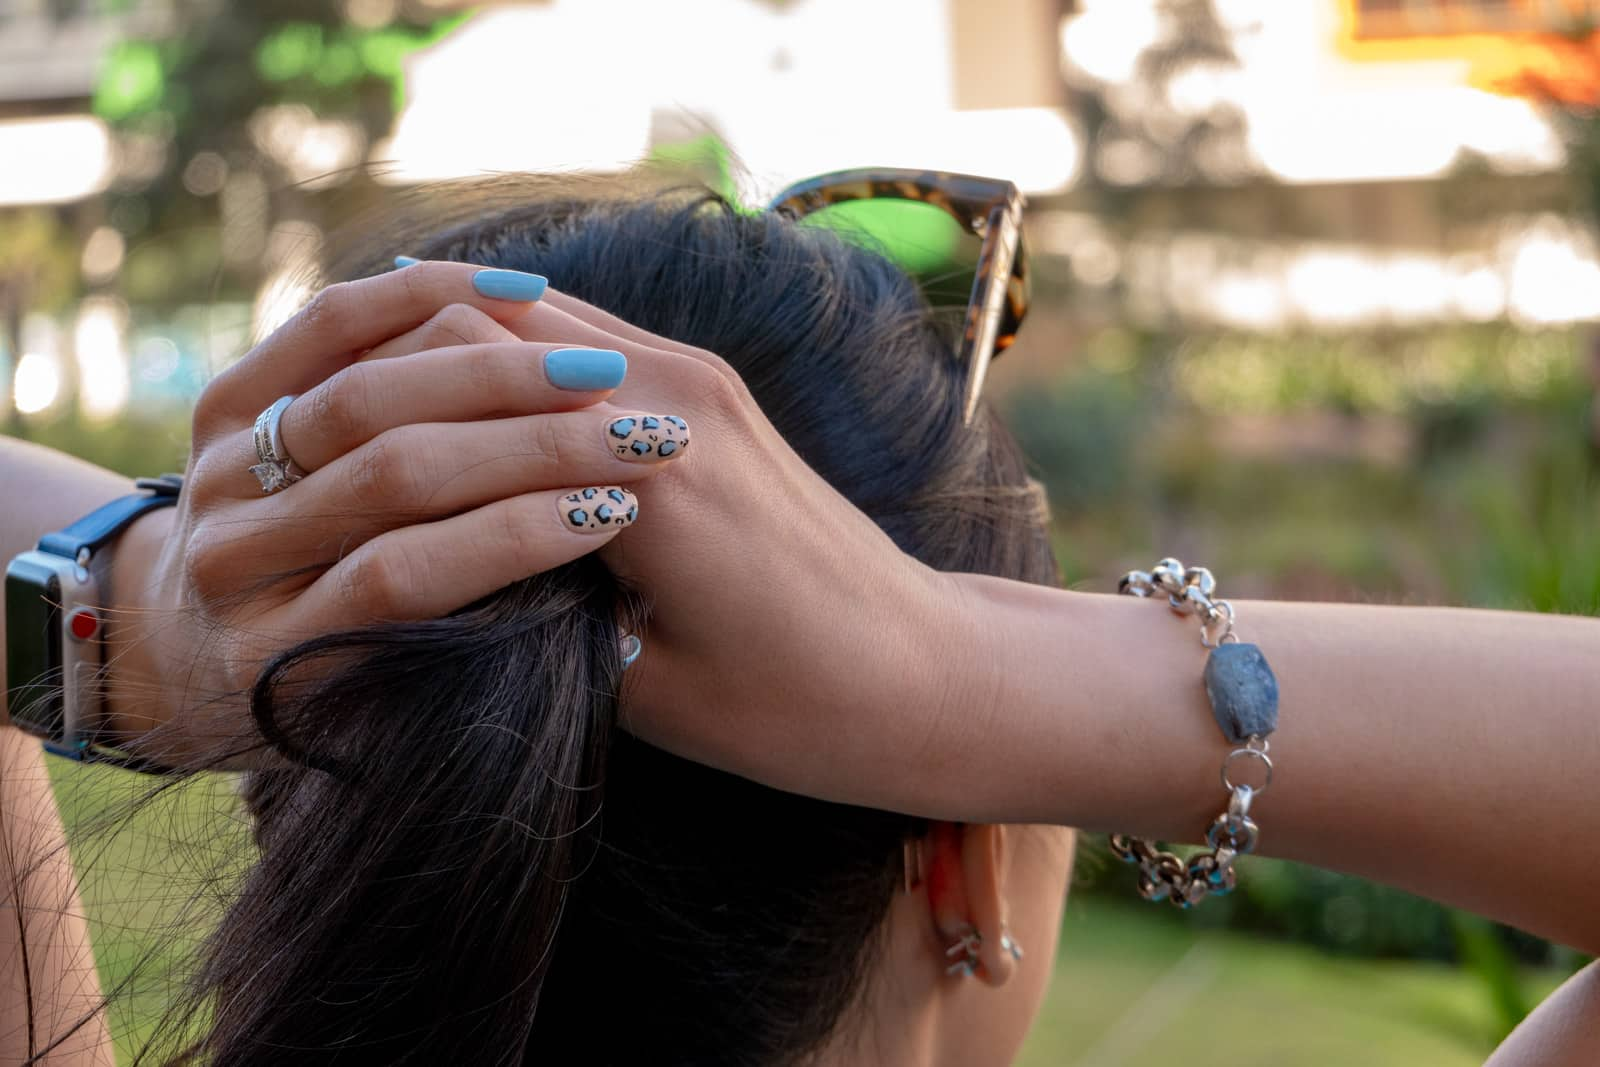 A close-up view of a woman's head from behind. Her hands are holding her dark hair up in a ponytail. She has blue nails with a few nails having leopard-print nail art on them